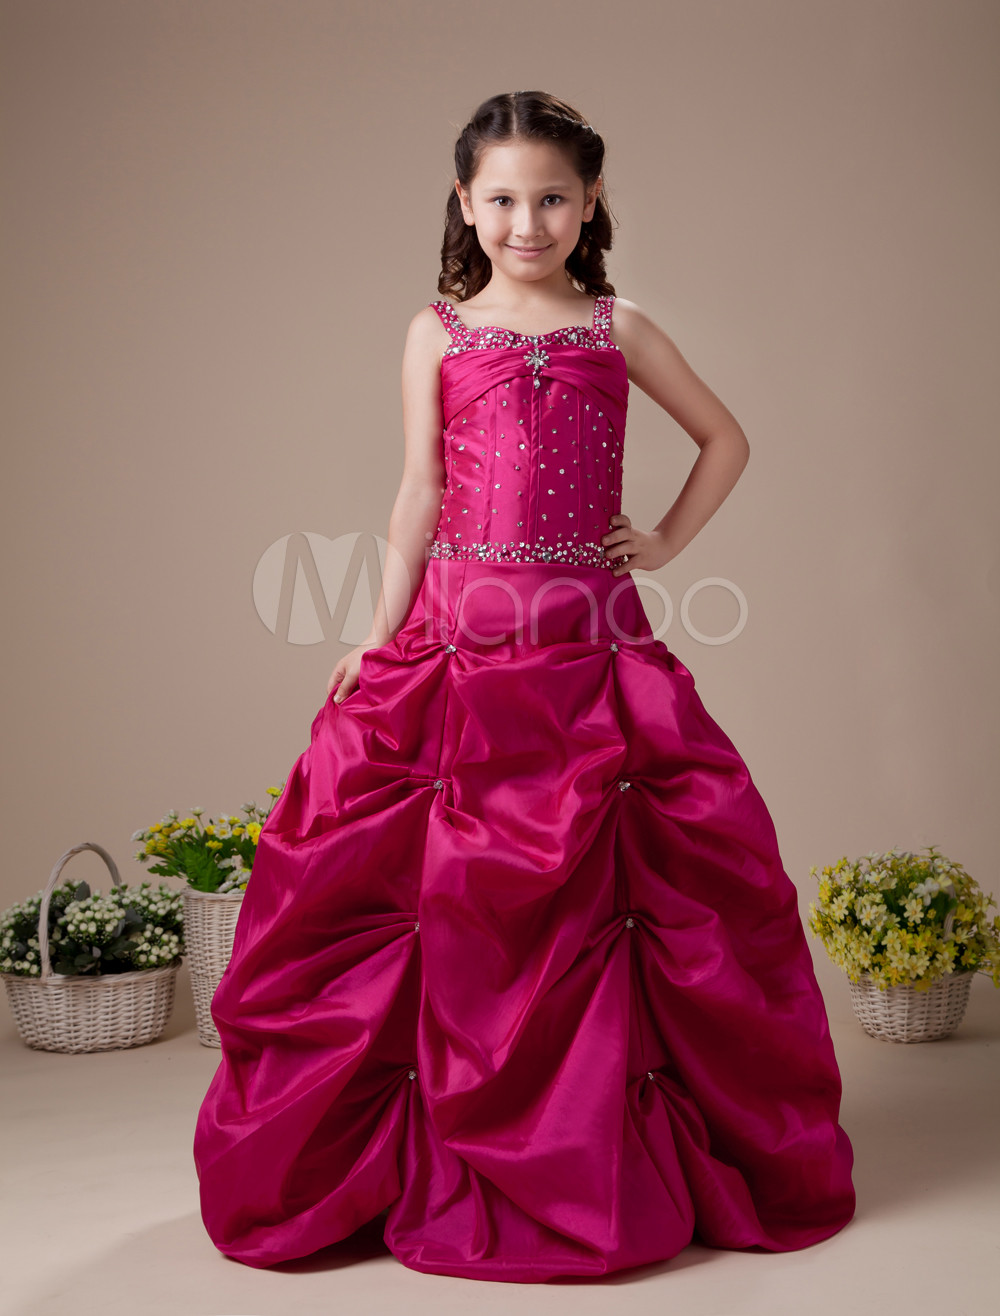 red flower girl dress. Black Bedroom Furniture Sets. Home Design Ideas